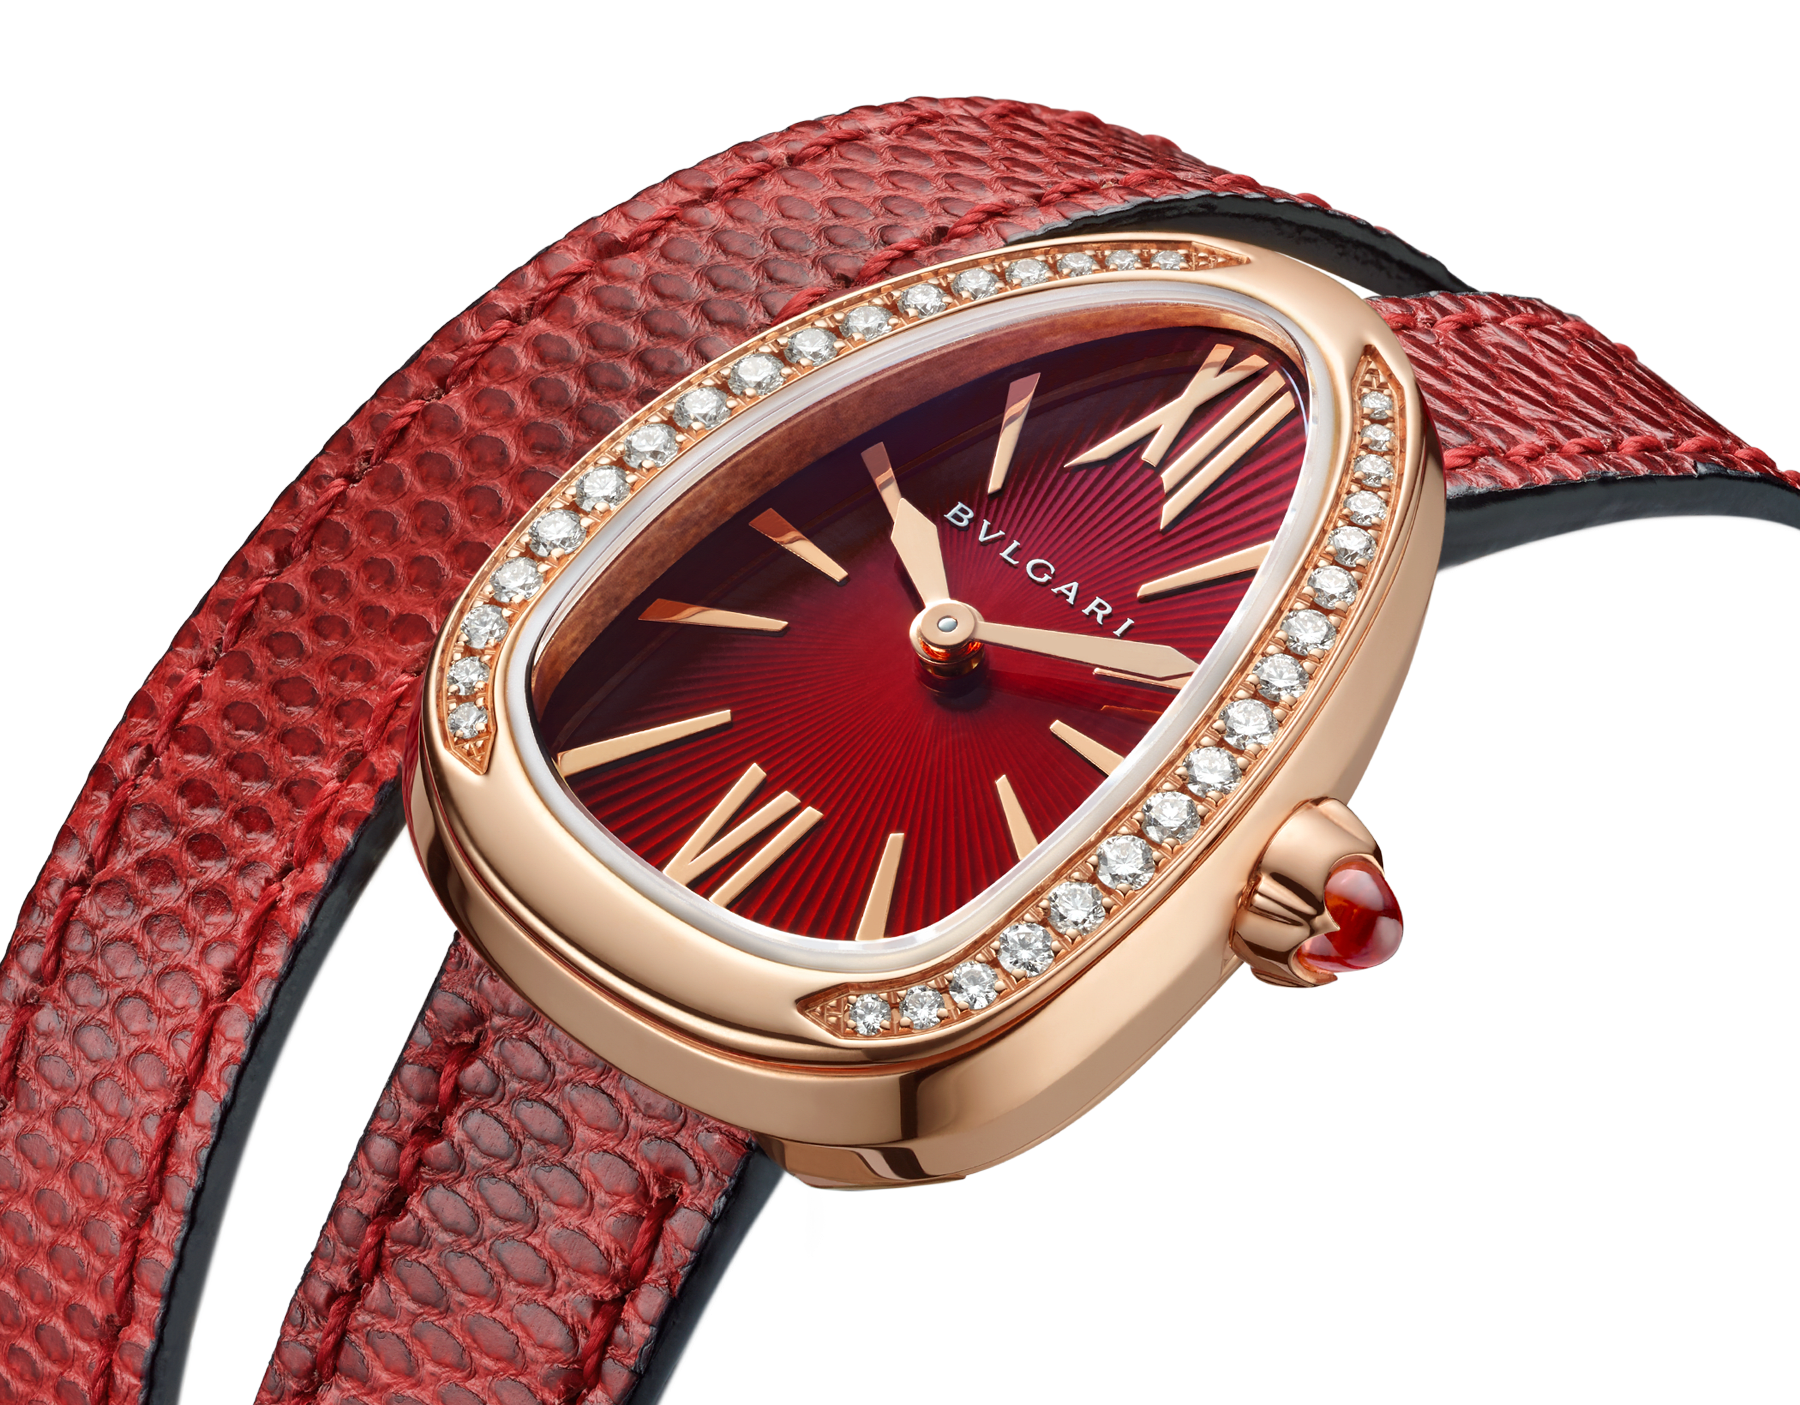 Serpenti watch with 18 kt rose gold case set with brilliant cut diamonds, red lacquered dial and interchangeable double spiral bracelet in red karung leather. 102730 image 3